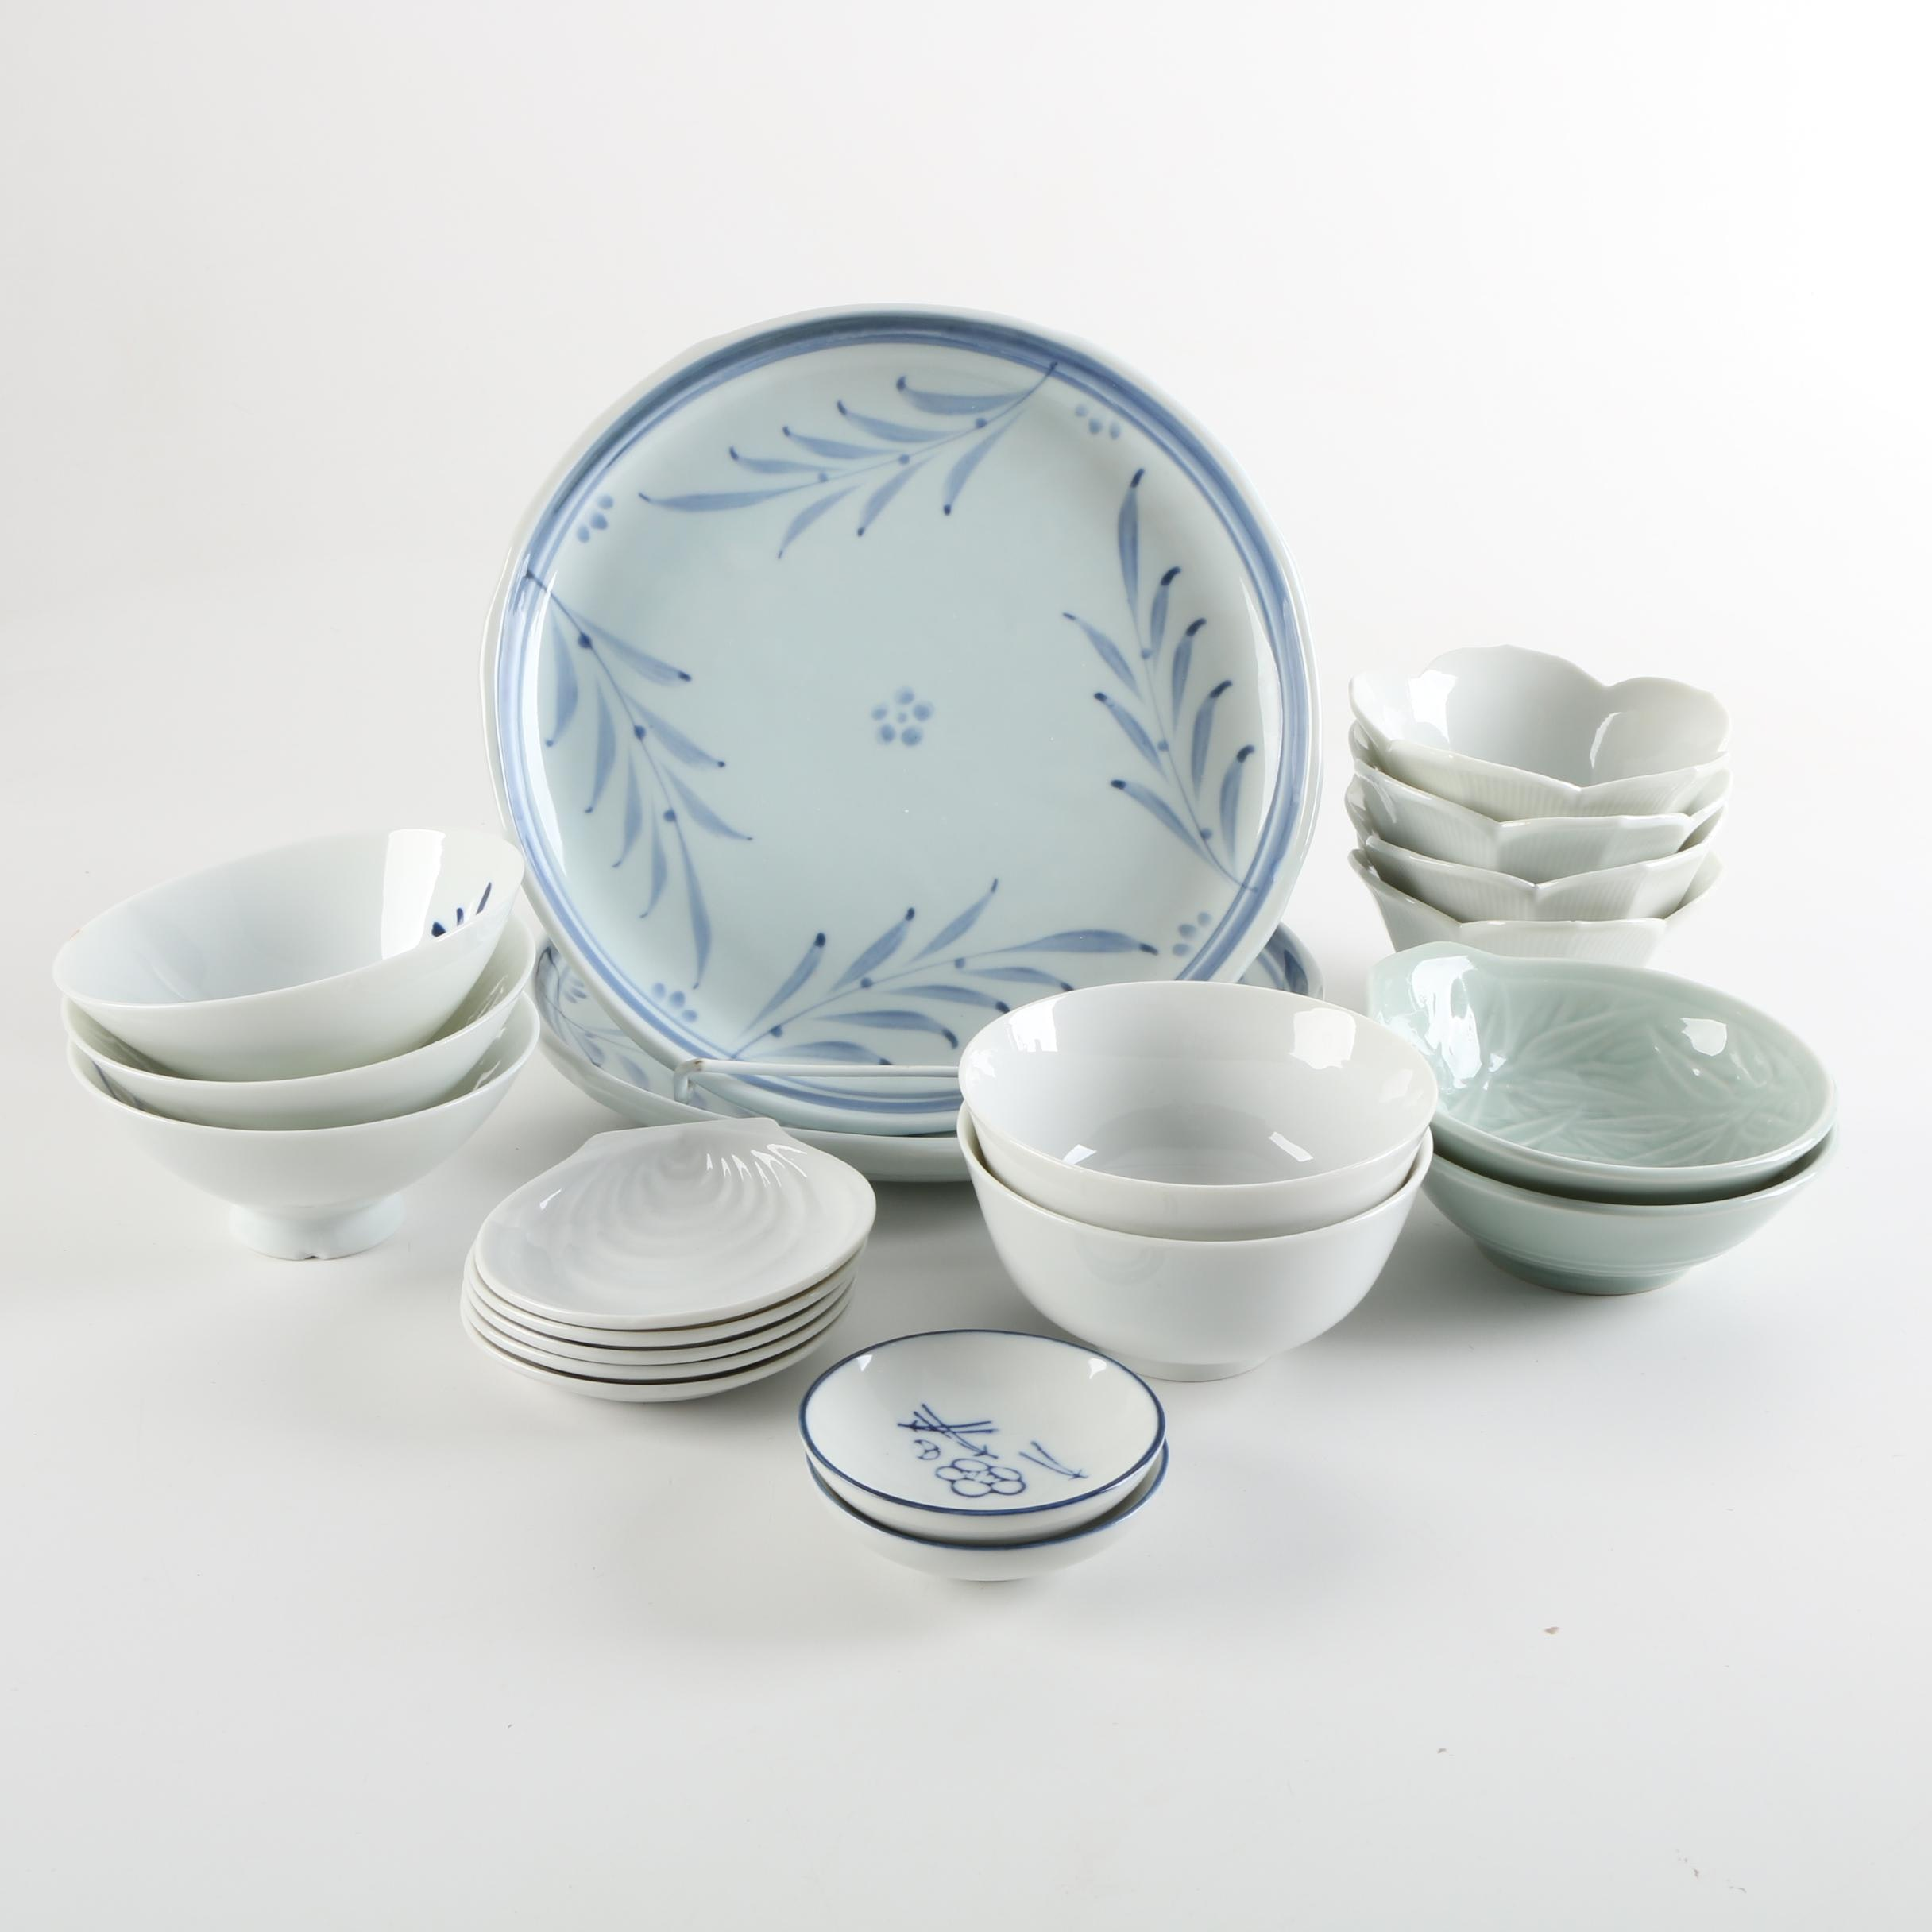 Contemporary Asian Tableware & Vintage Tableware Auction | Antique Tableware Auctions : EBTH